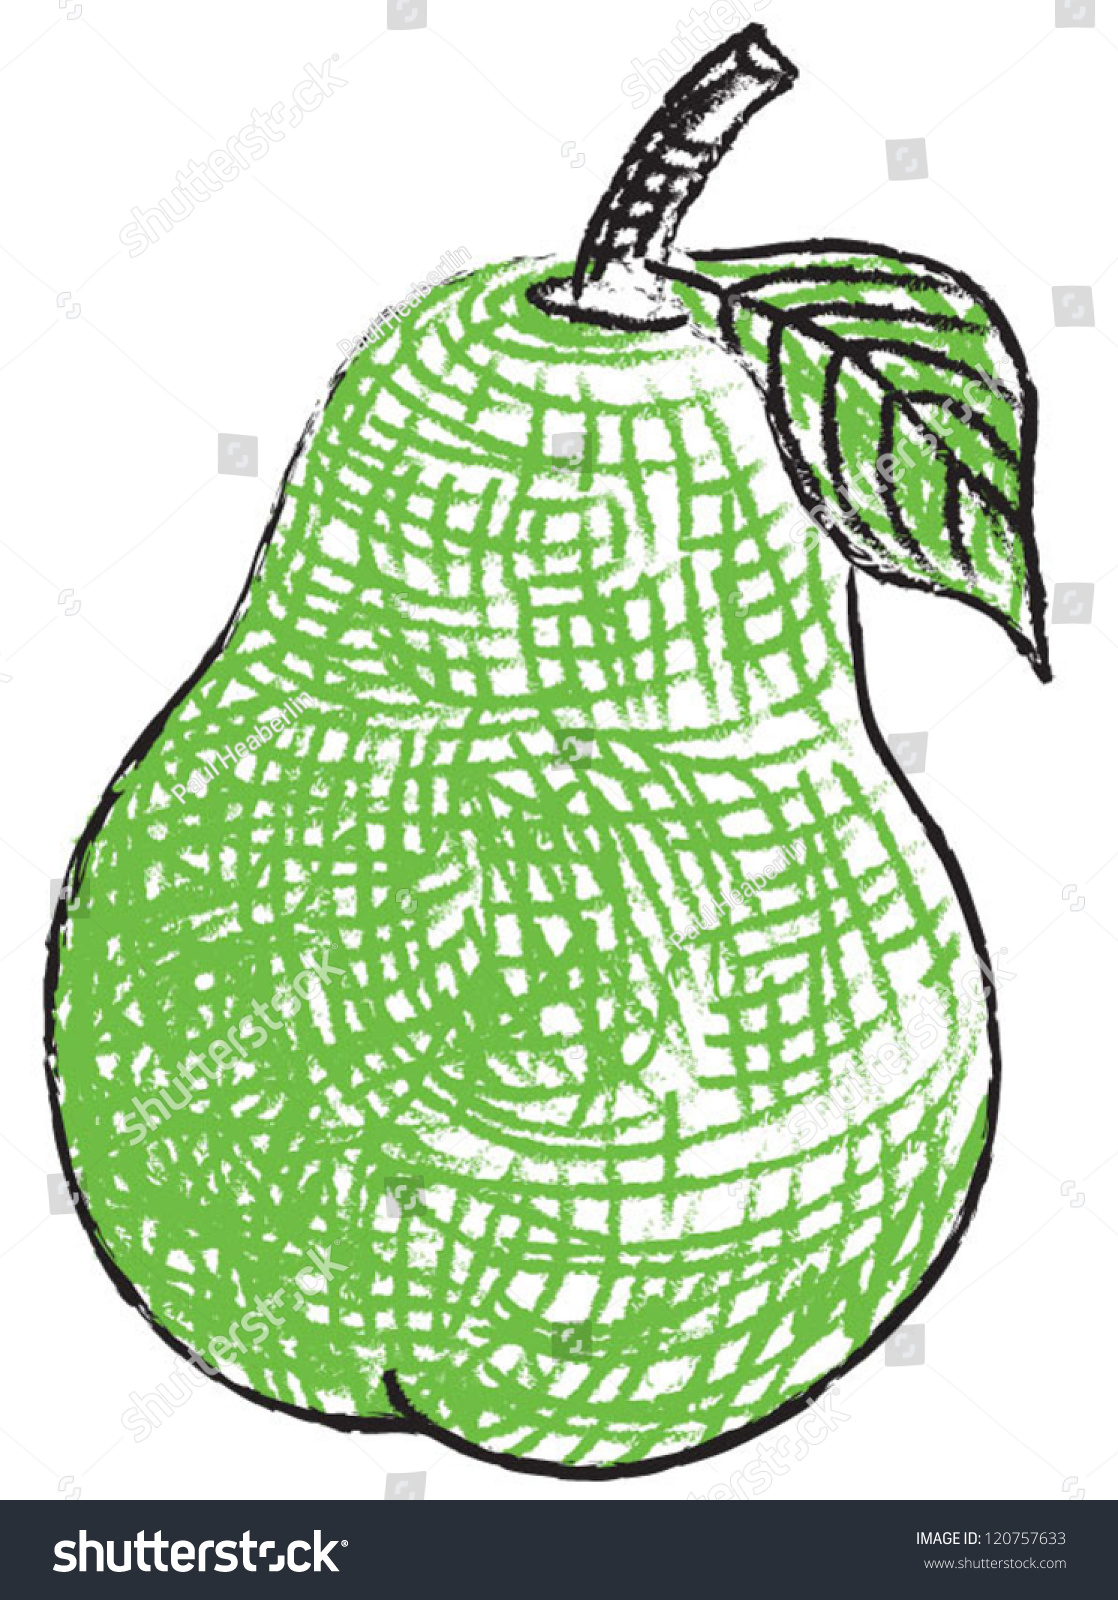 Contour Line Drawing Of Fruit : Drawn pear with cross hatching for texture and contour